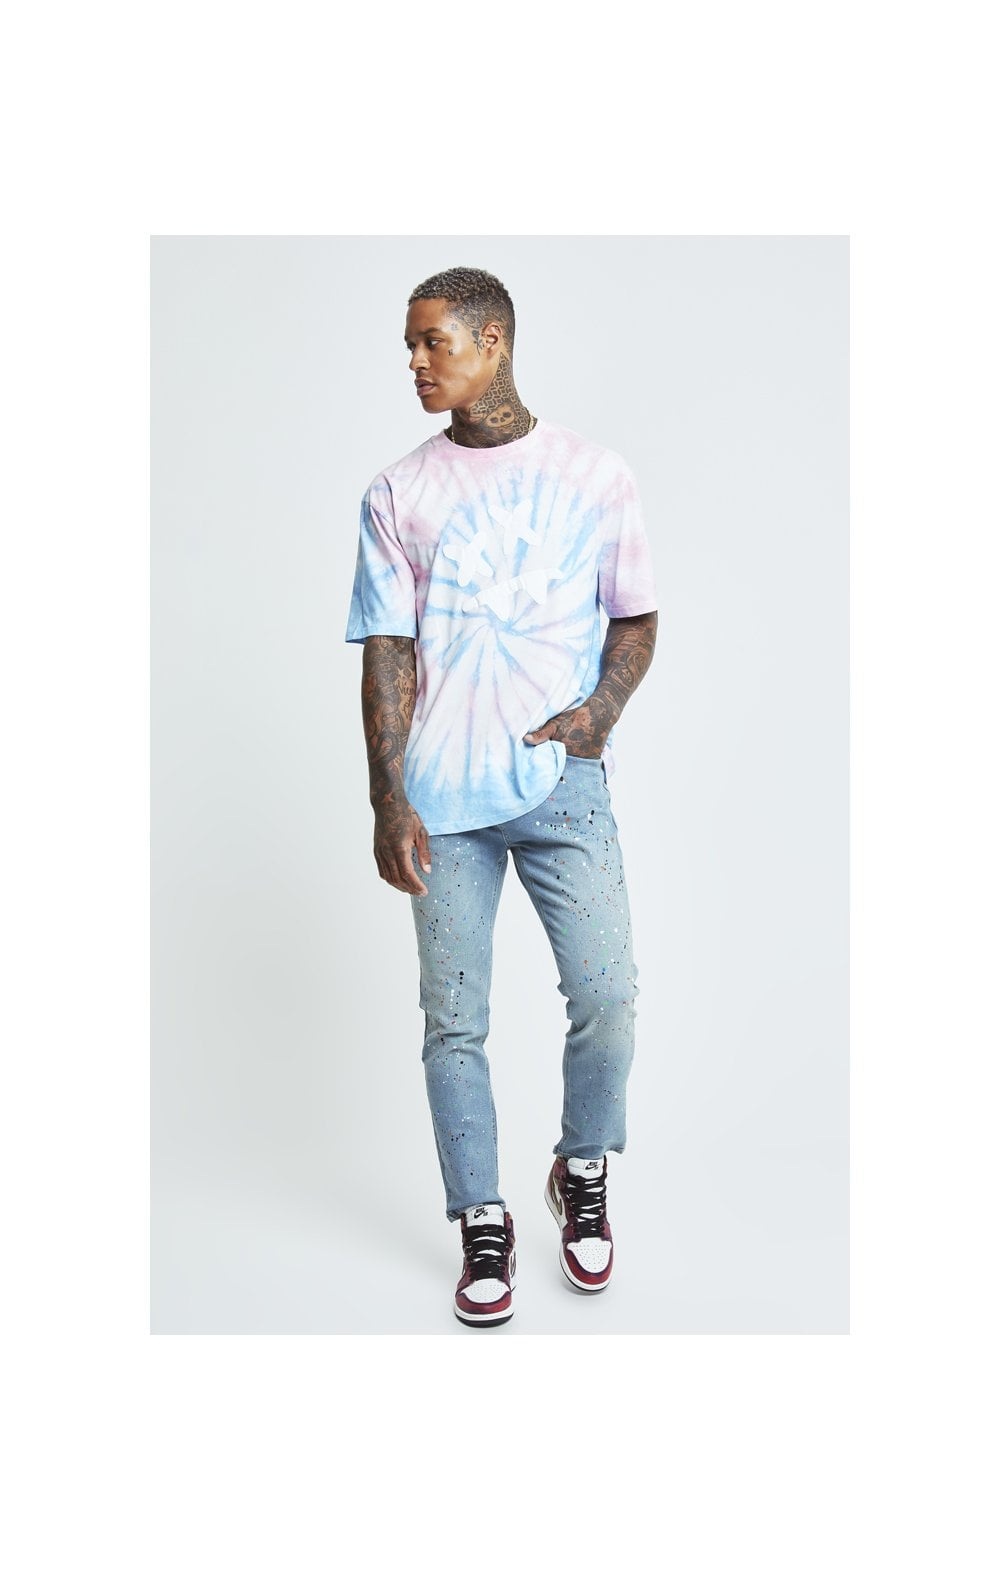 Load image into Gallery viewer, SikSilk X Steve Aoki S/S Oversize Essential Tee – Baby Pink & Blue Tie Dye (3)